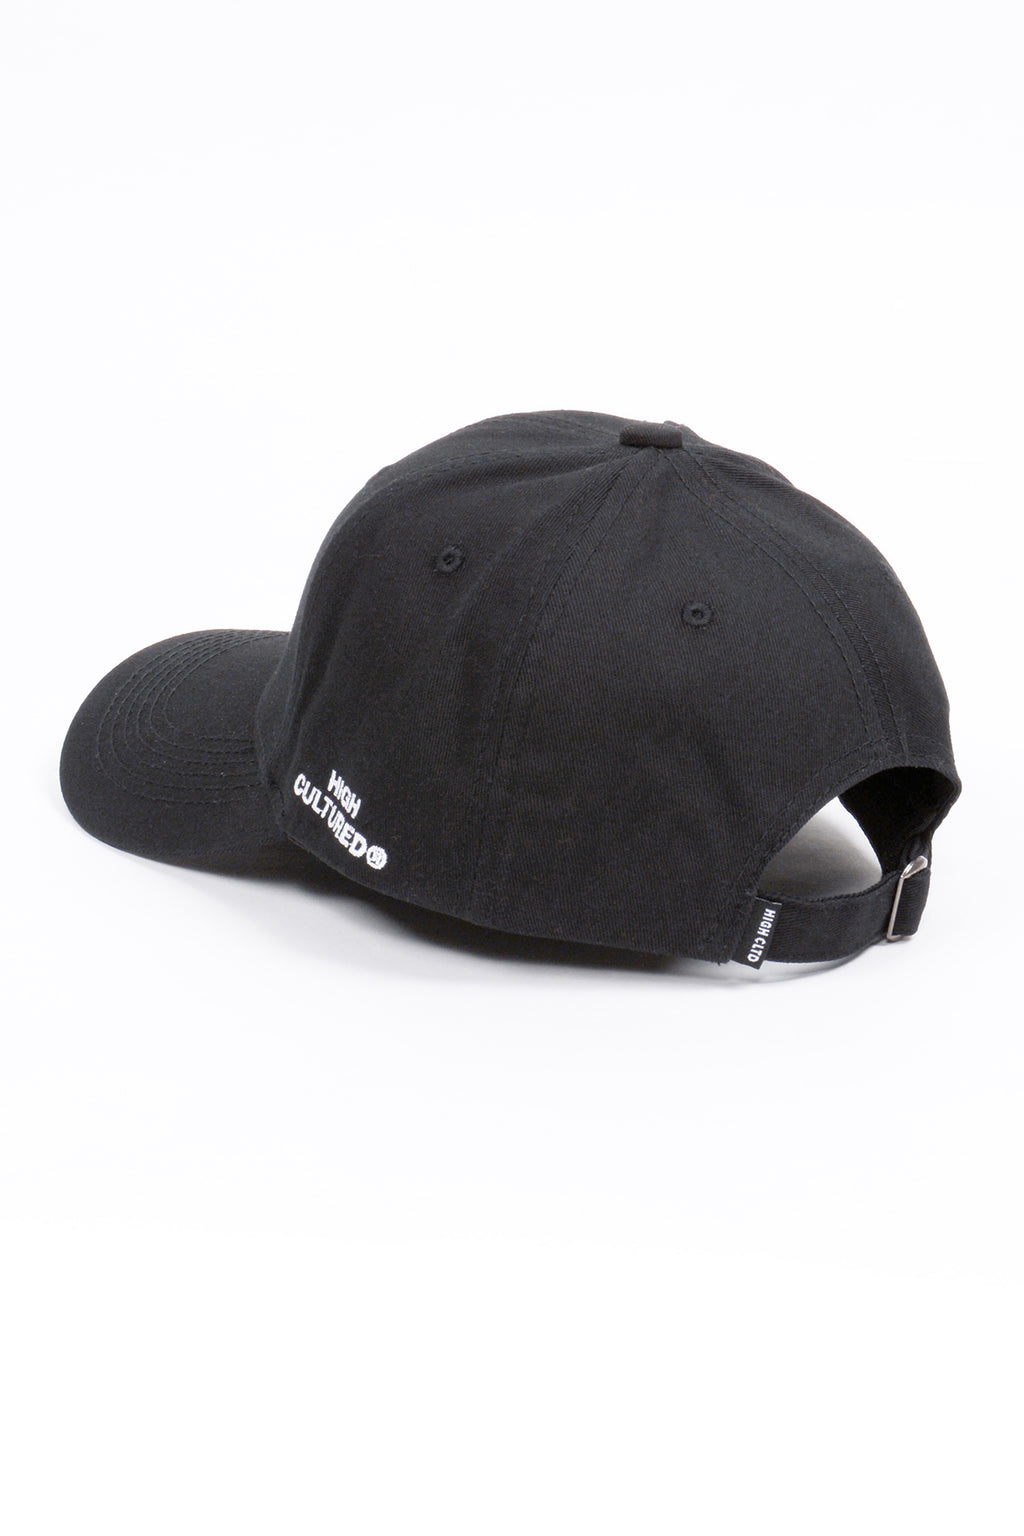 ORDINARY BEAR BASEBALL CAP | BLACK - 126